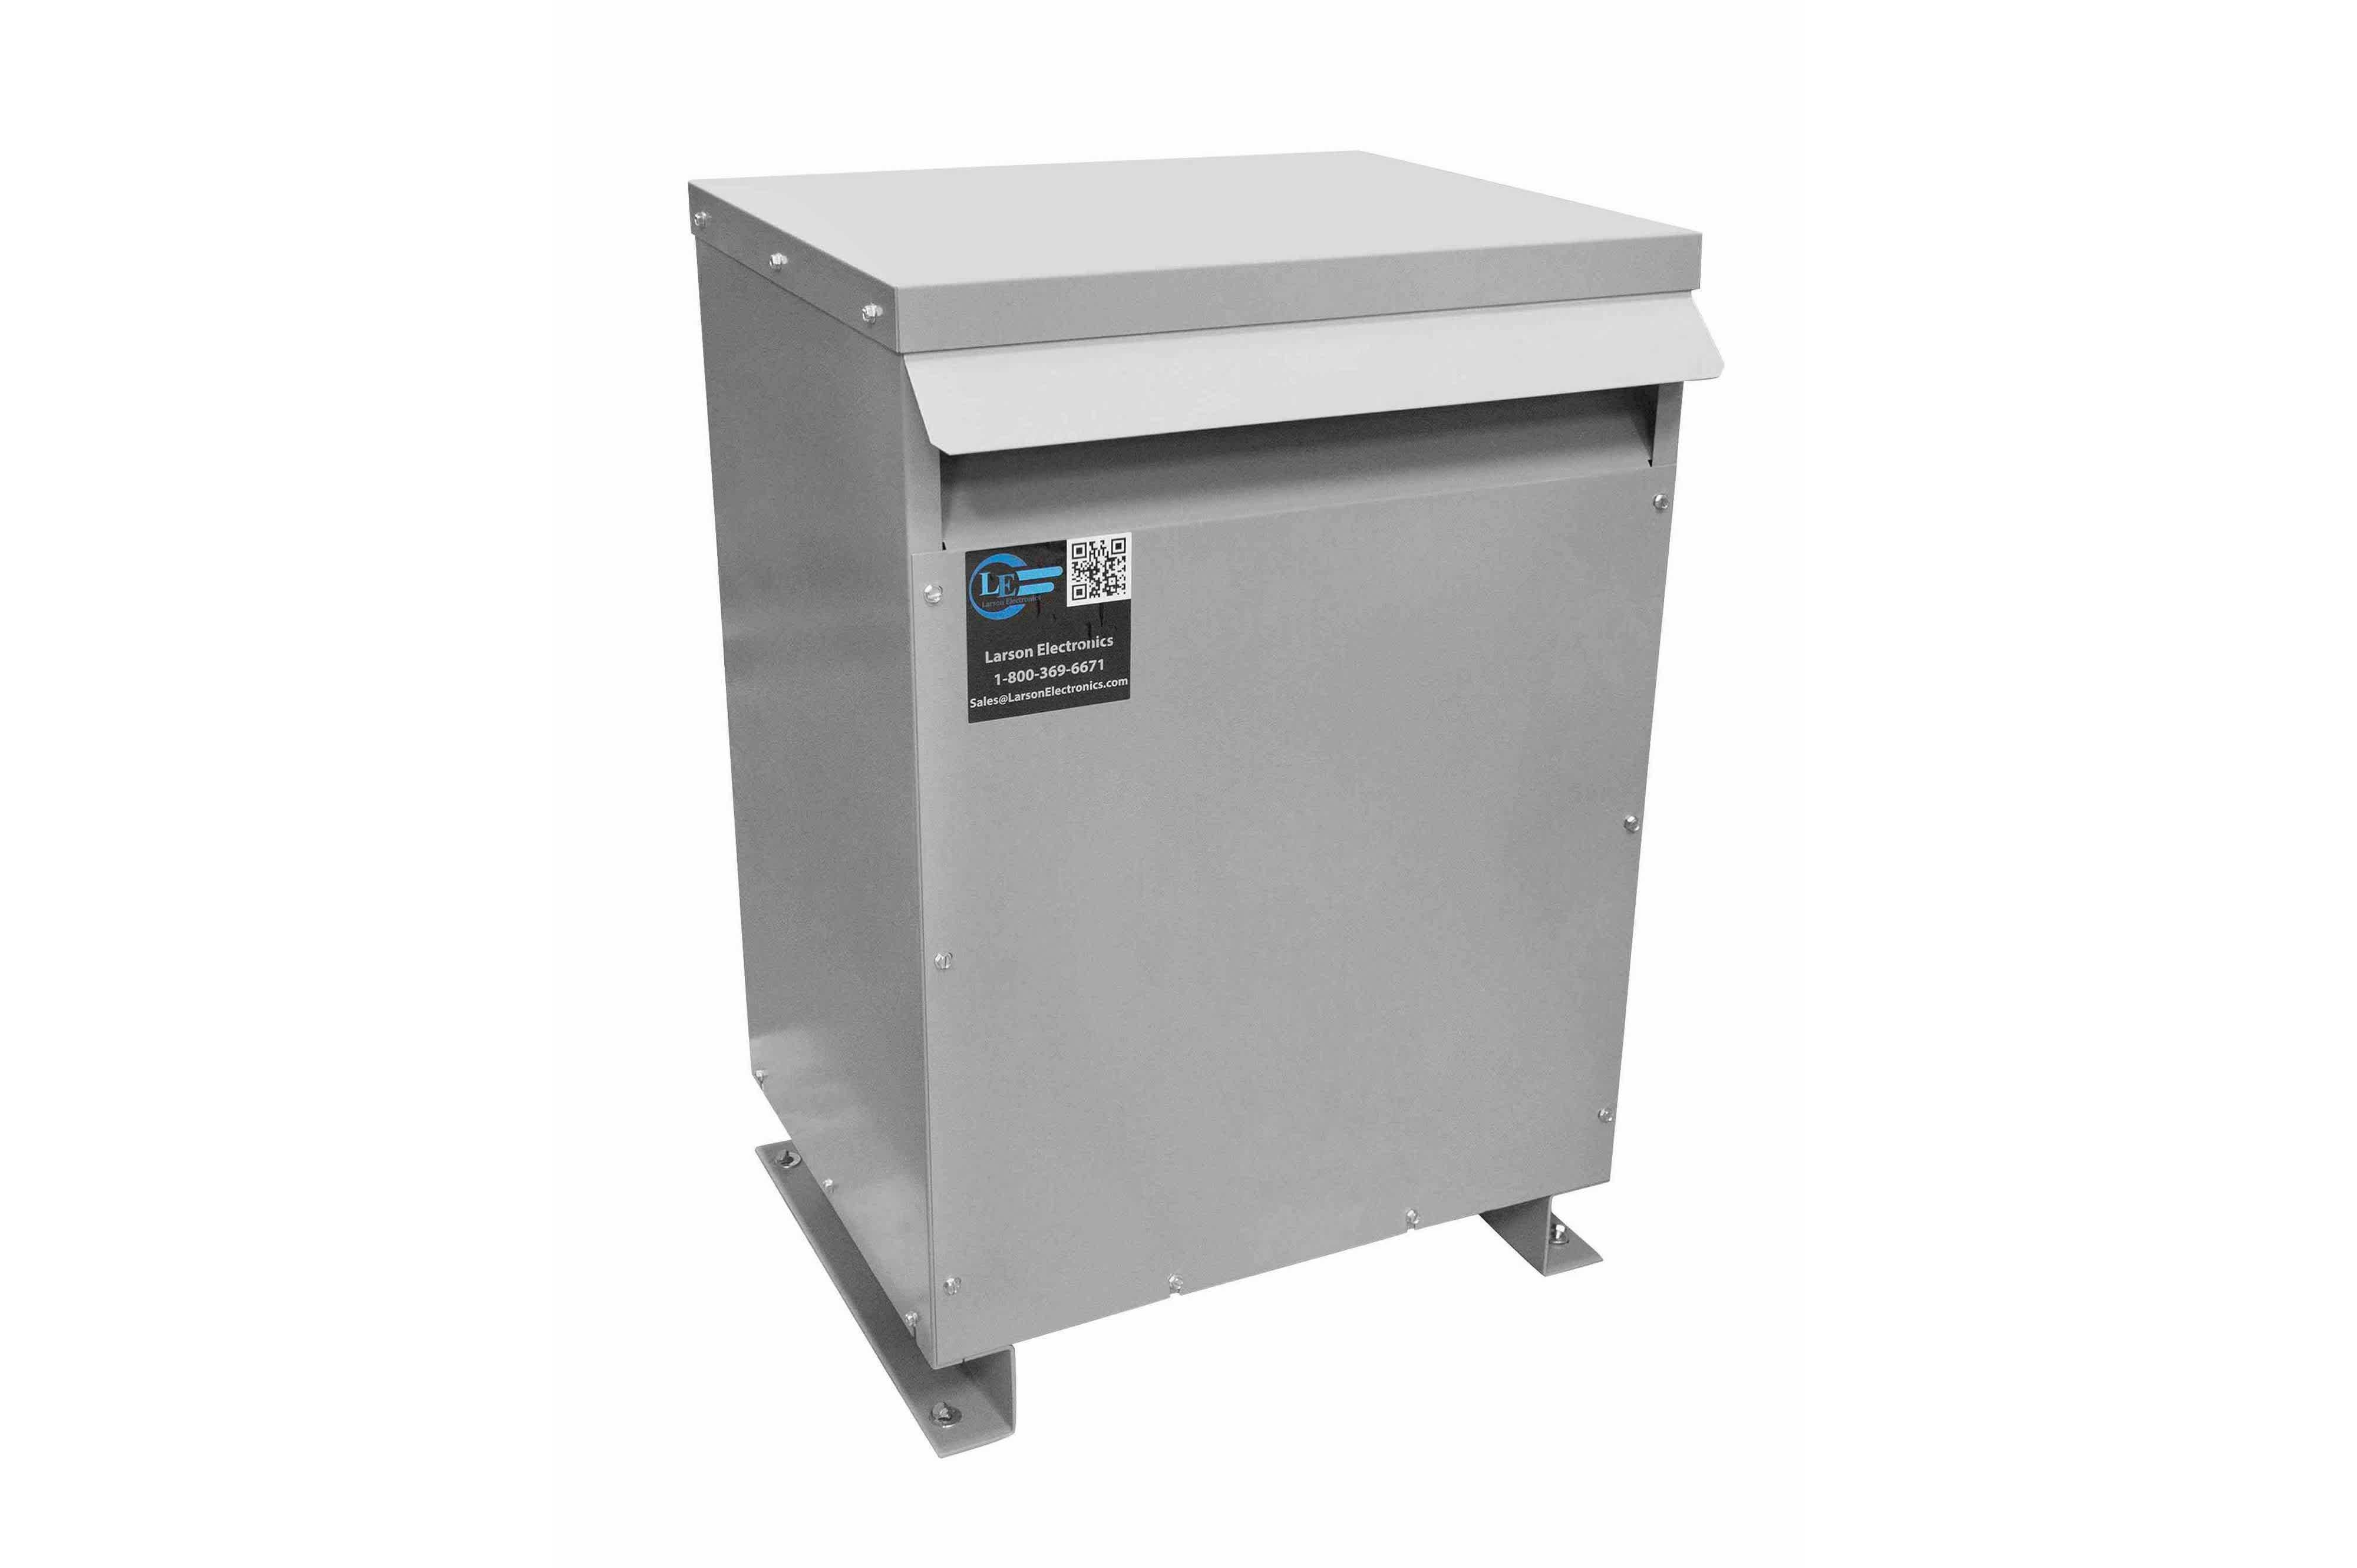 110 kVA 3PH Isolation Transformer, 575V Wye Primary, 240V Delta Secondary, N3R, Ventilated, 60 Hz